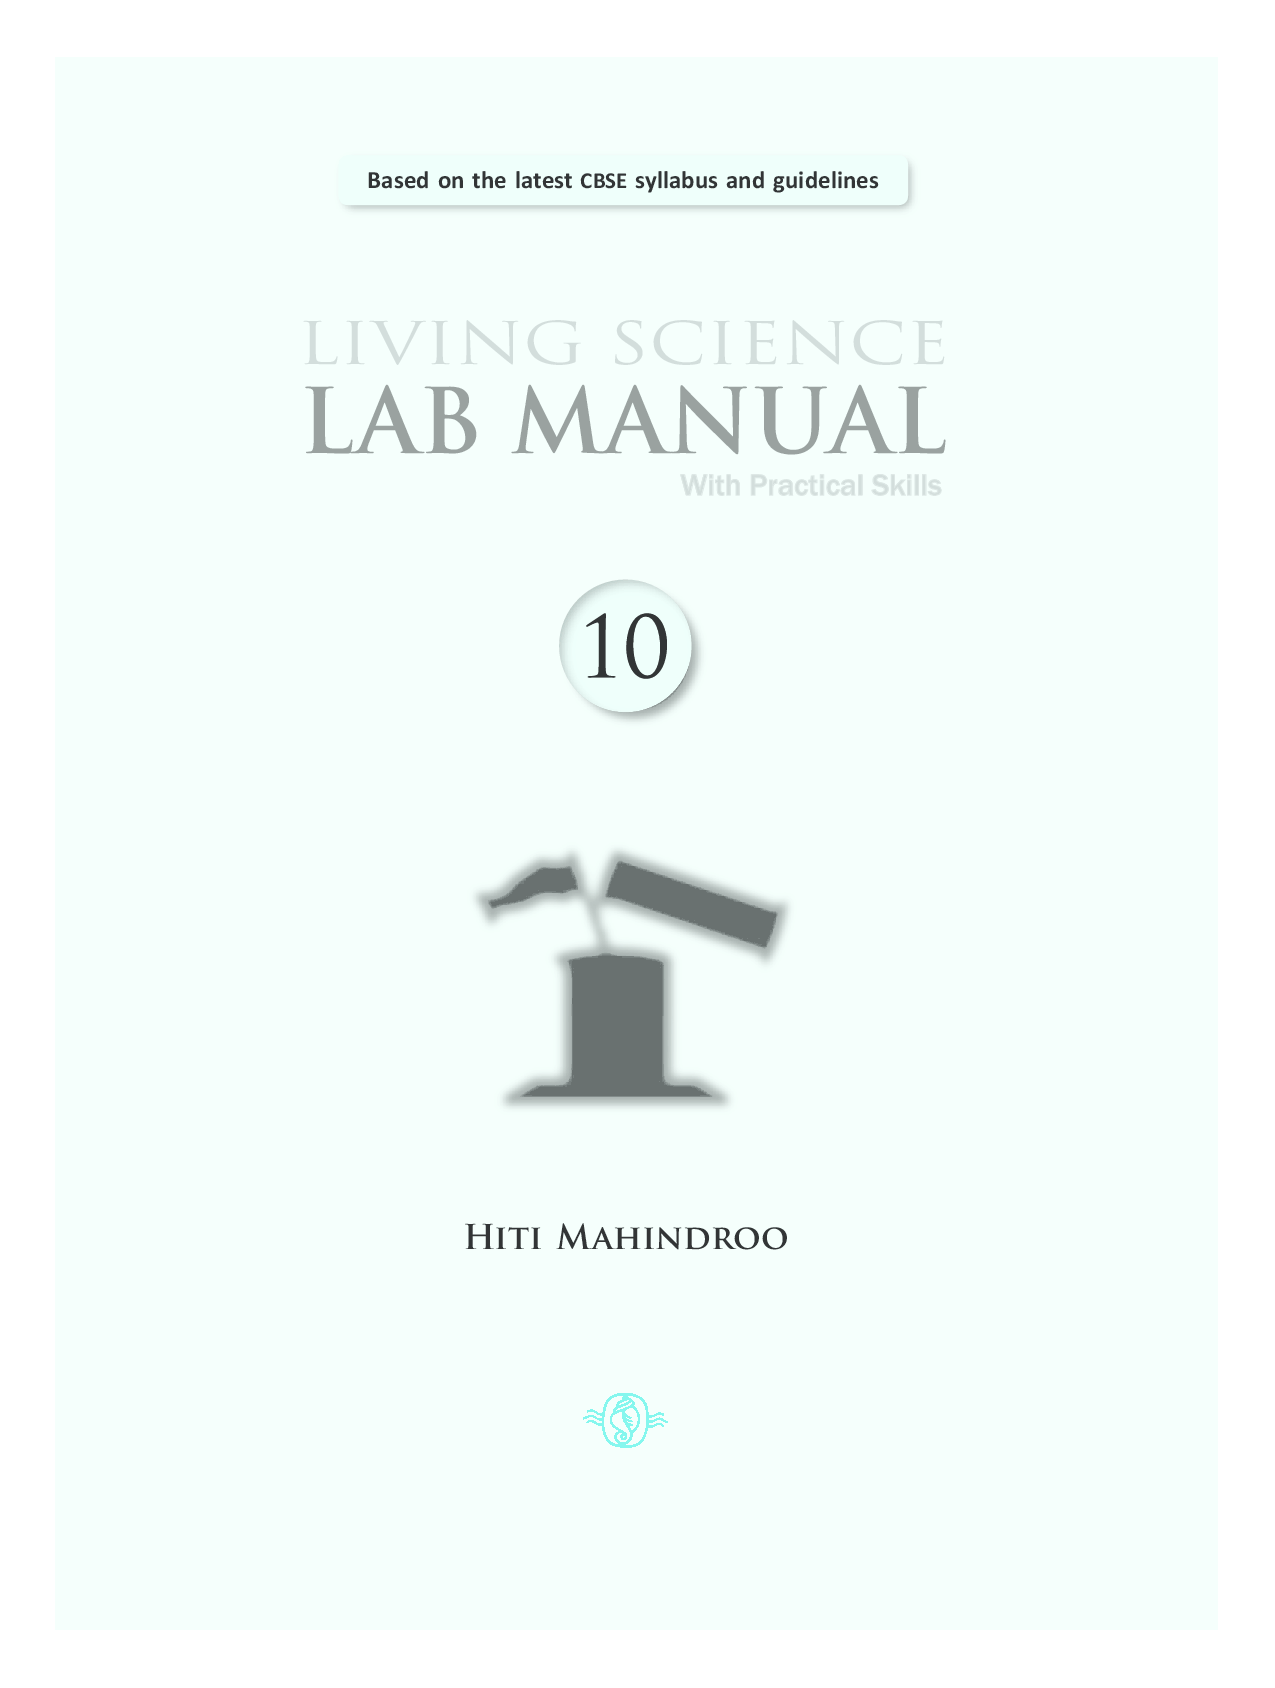 Download CBSE Living Science Lab Manual Class X by Hiti